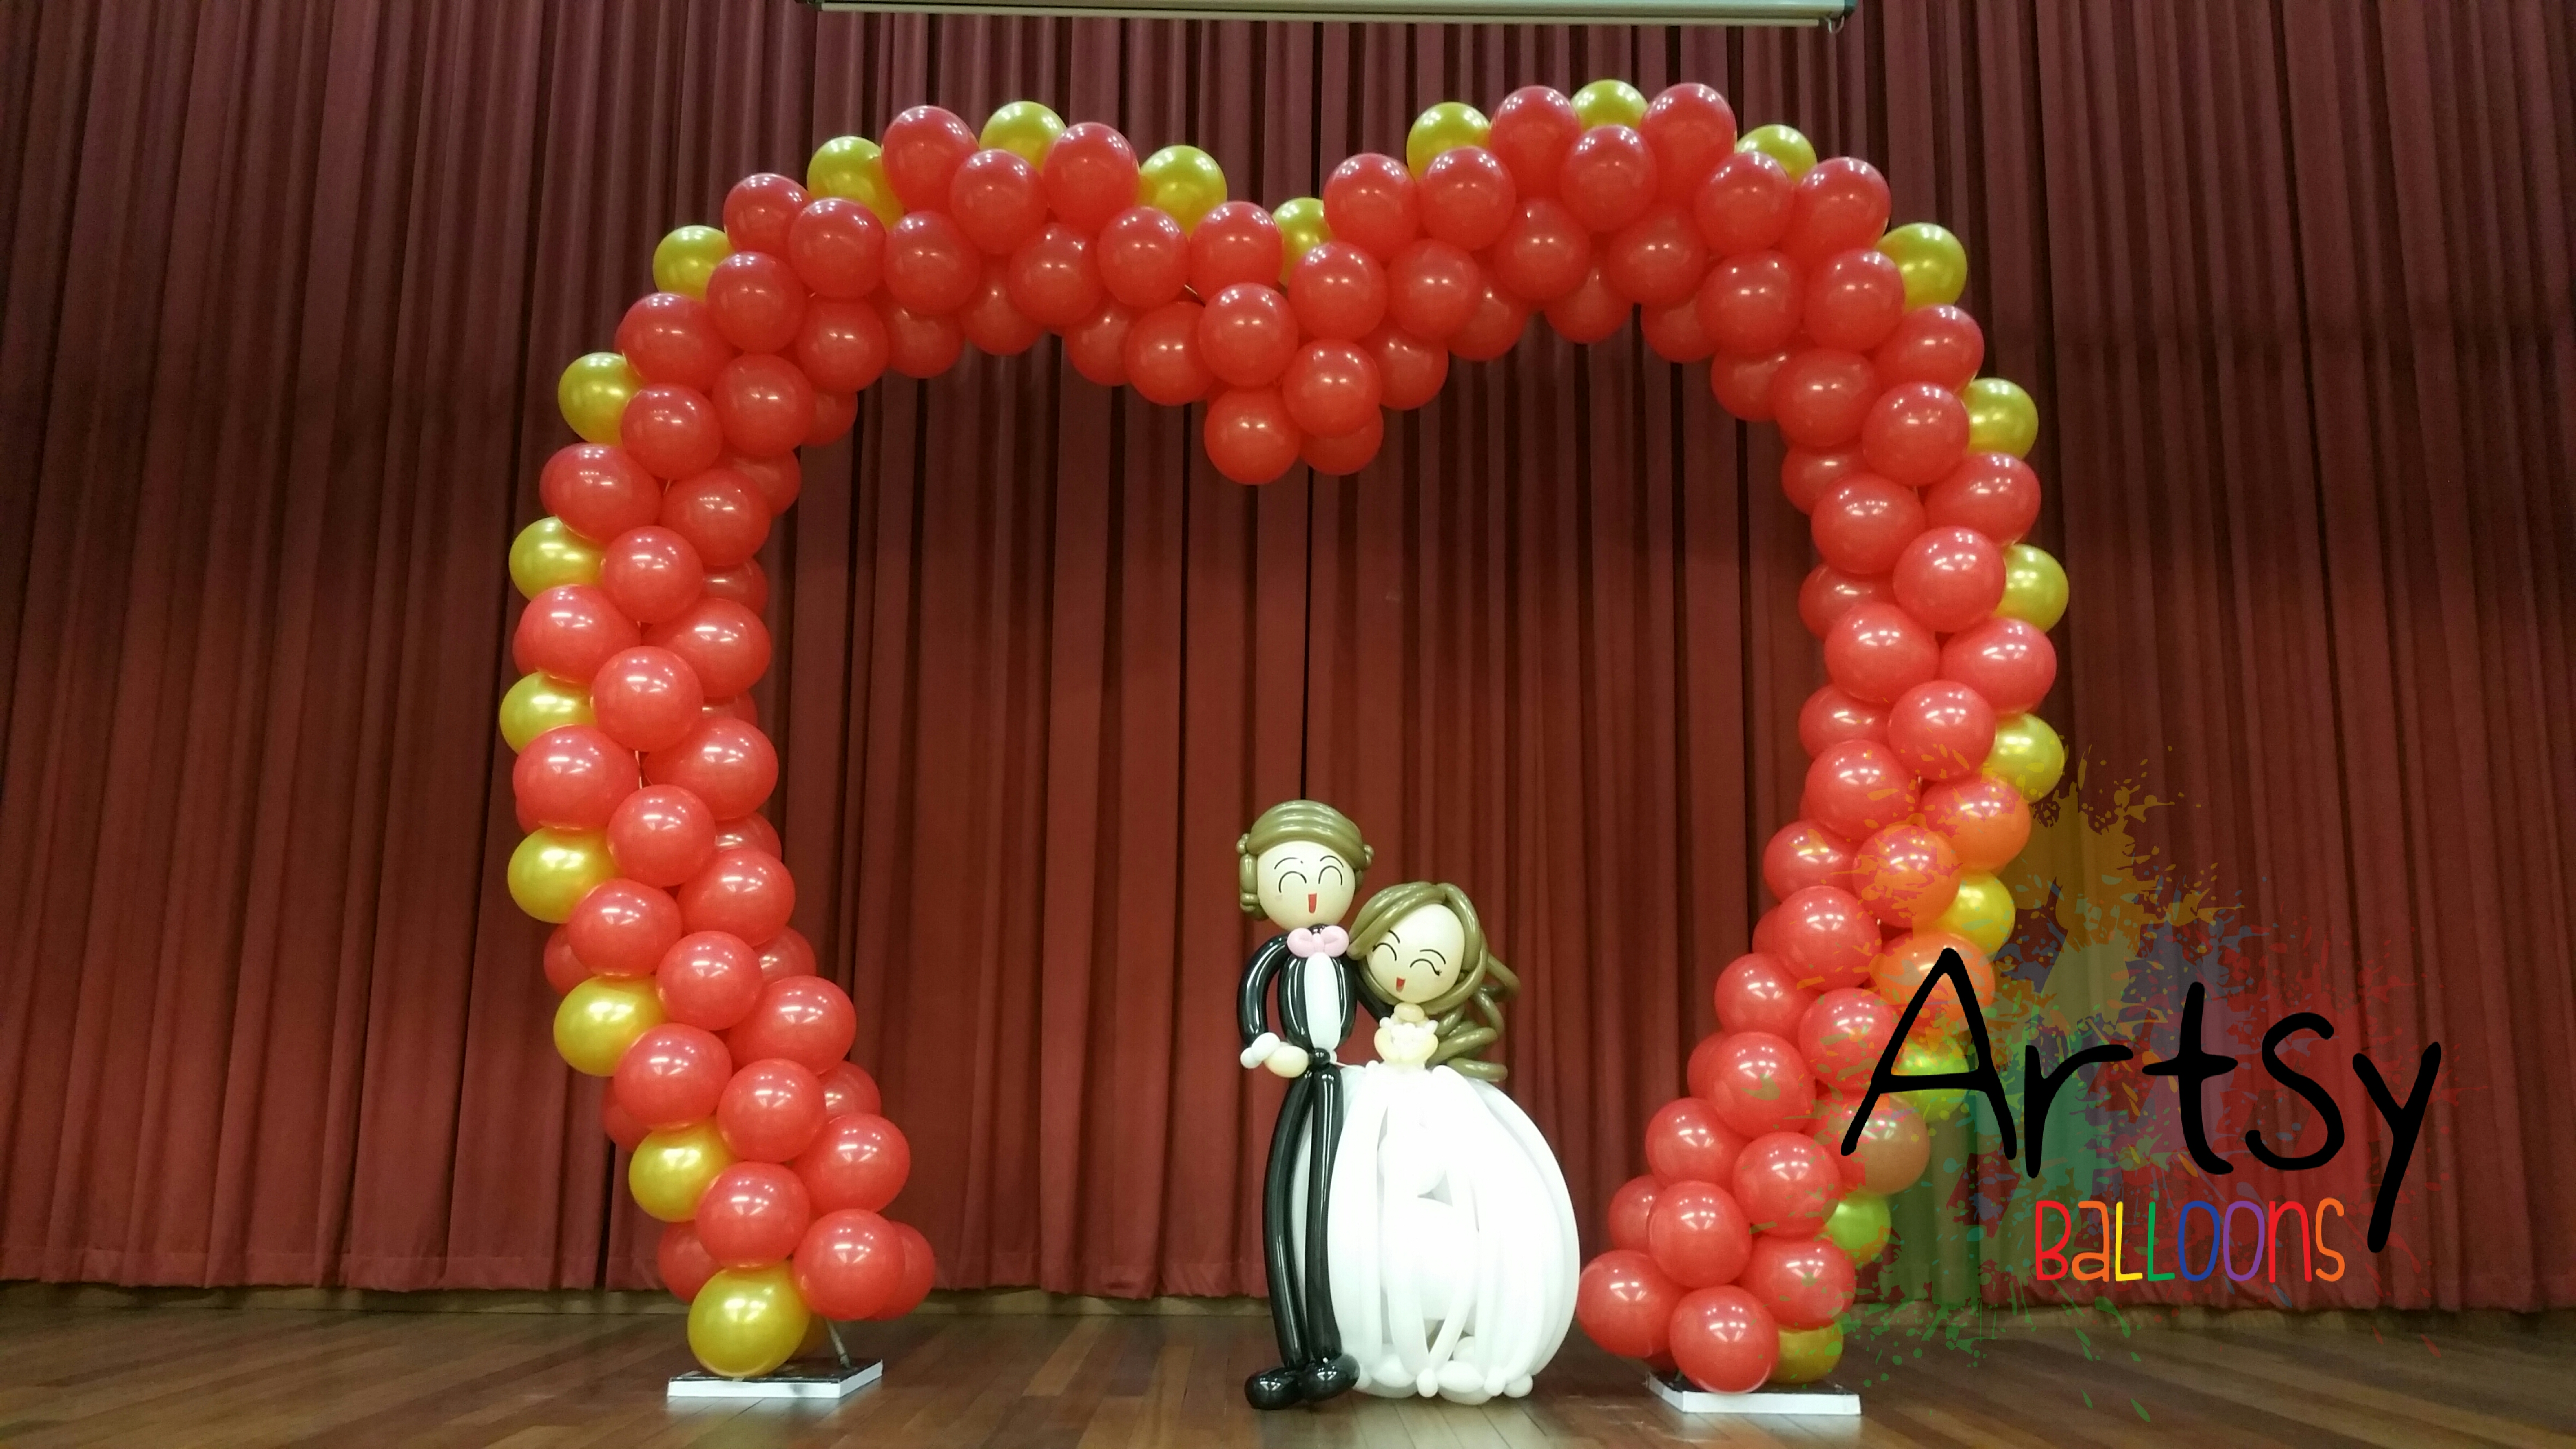 Wedding balloon decor - Here S My Heart Shaped Balloon Arch With My Life Size Wedding Couple Balloon Sculpture For A Newlywed S Balloon Decorations For Their Wedding